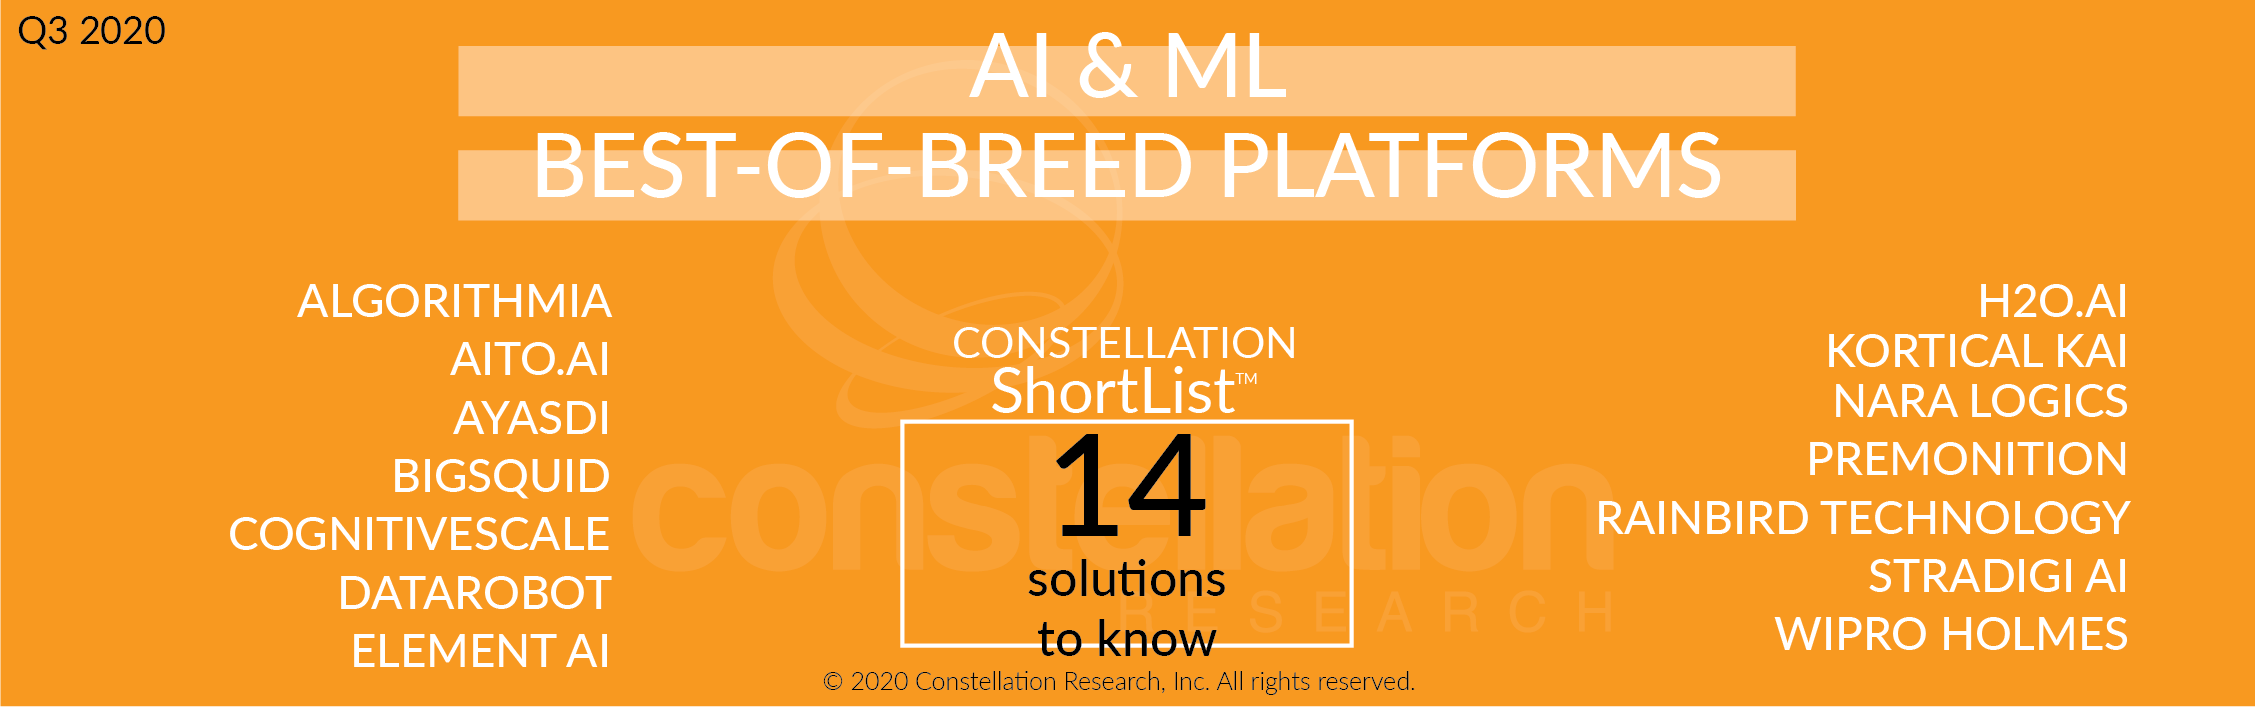 Constellation ShortList™ Artificial Intelligence and Machine Learning Best-of-Breed Platforms